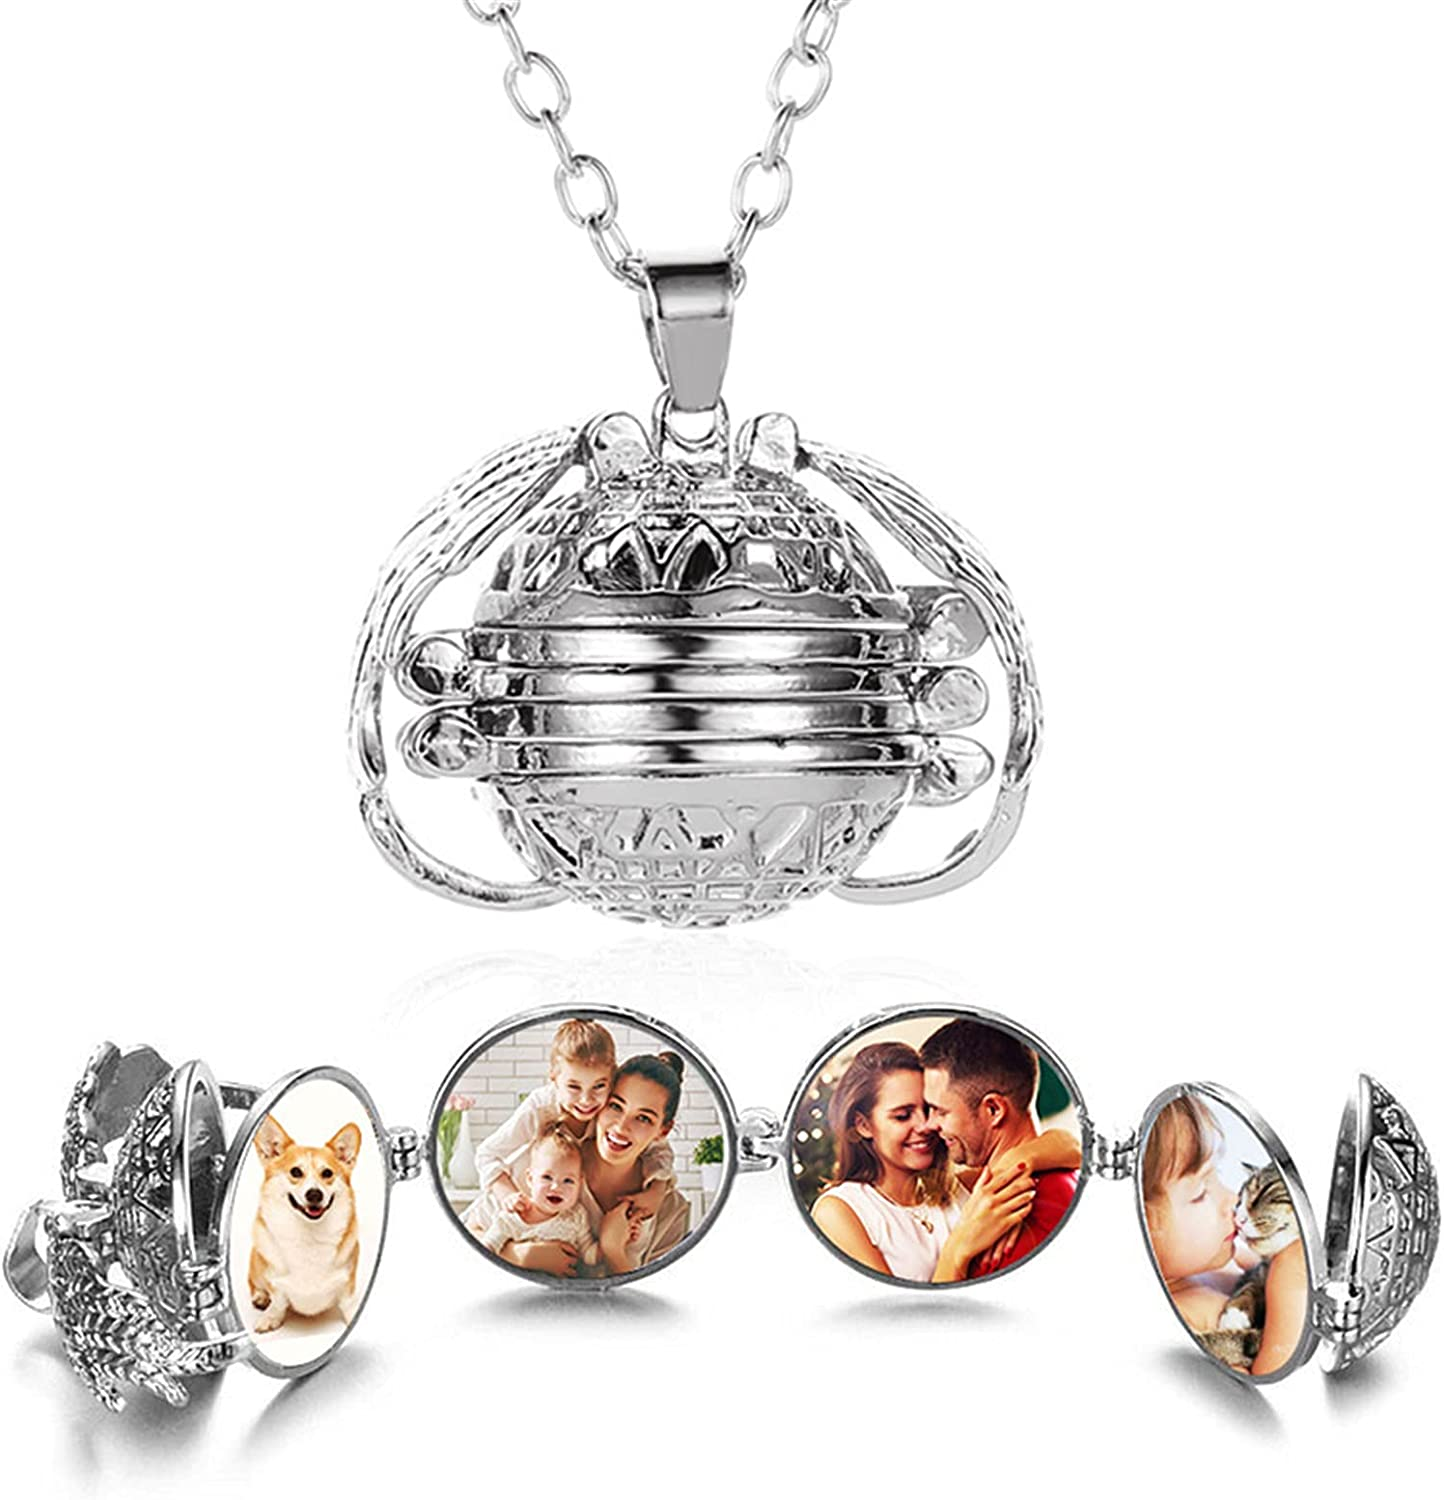 ONLYJUMP Wing Photo Locket Ranking TOP19 Necklace store Pictur 4 for Women